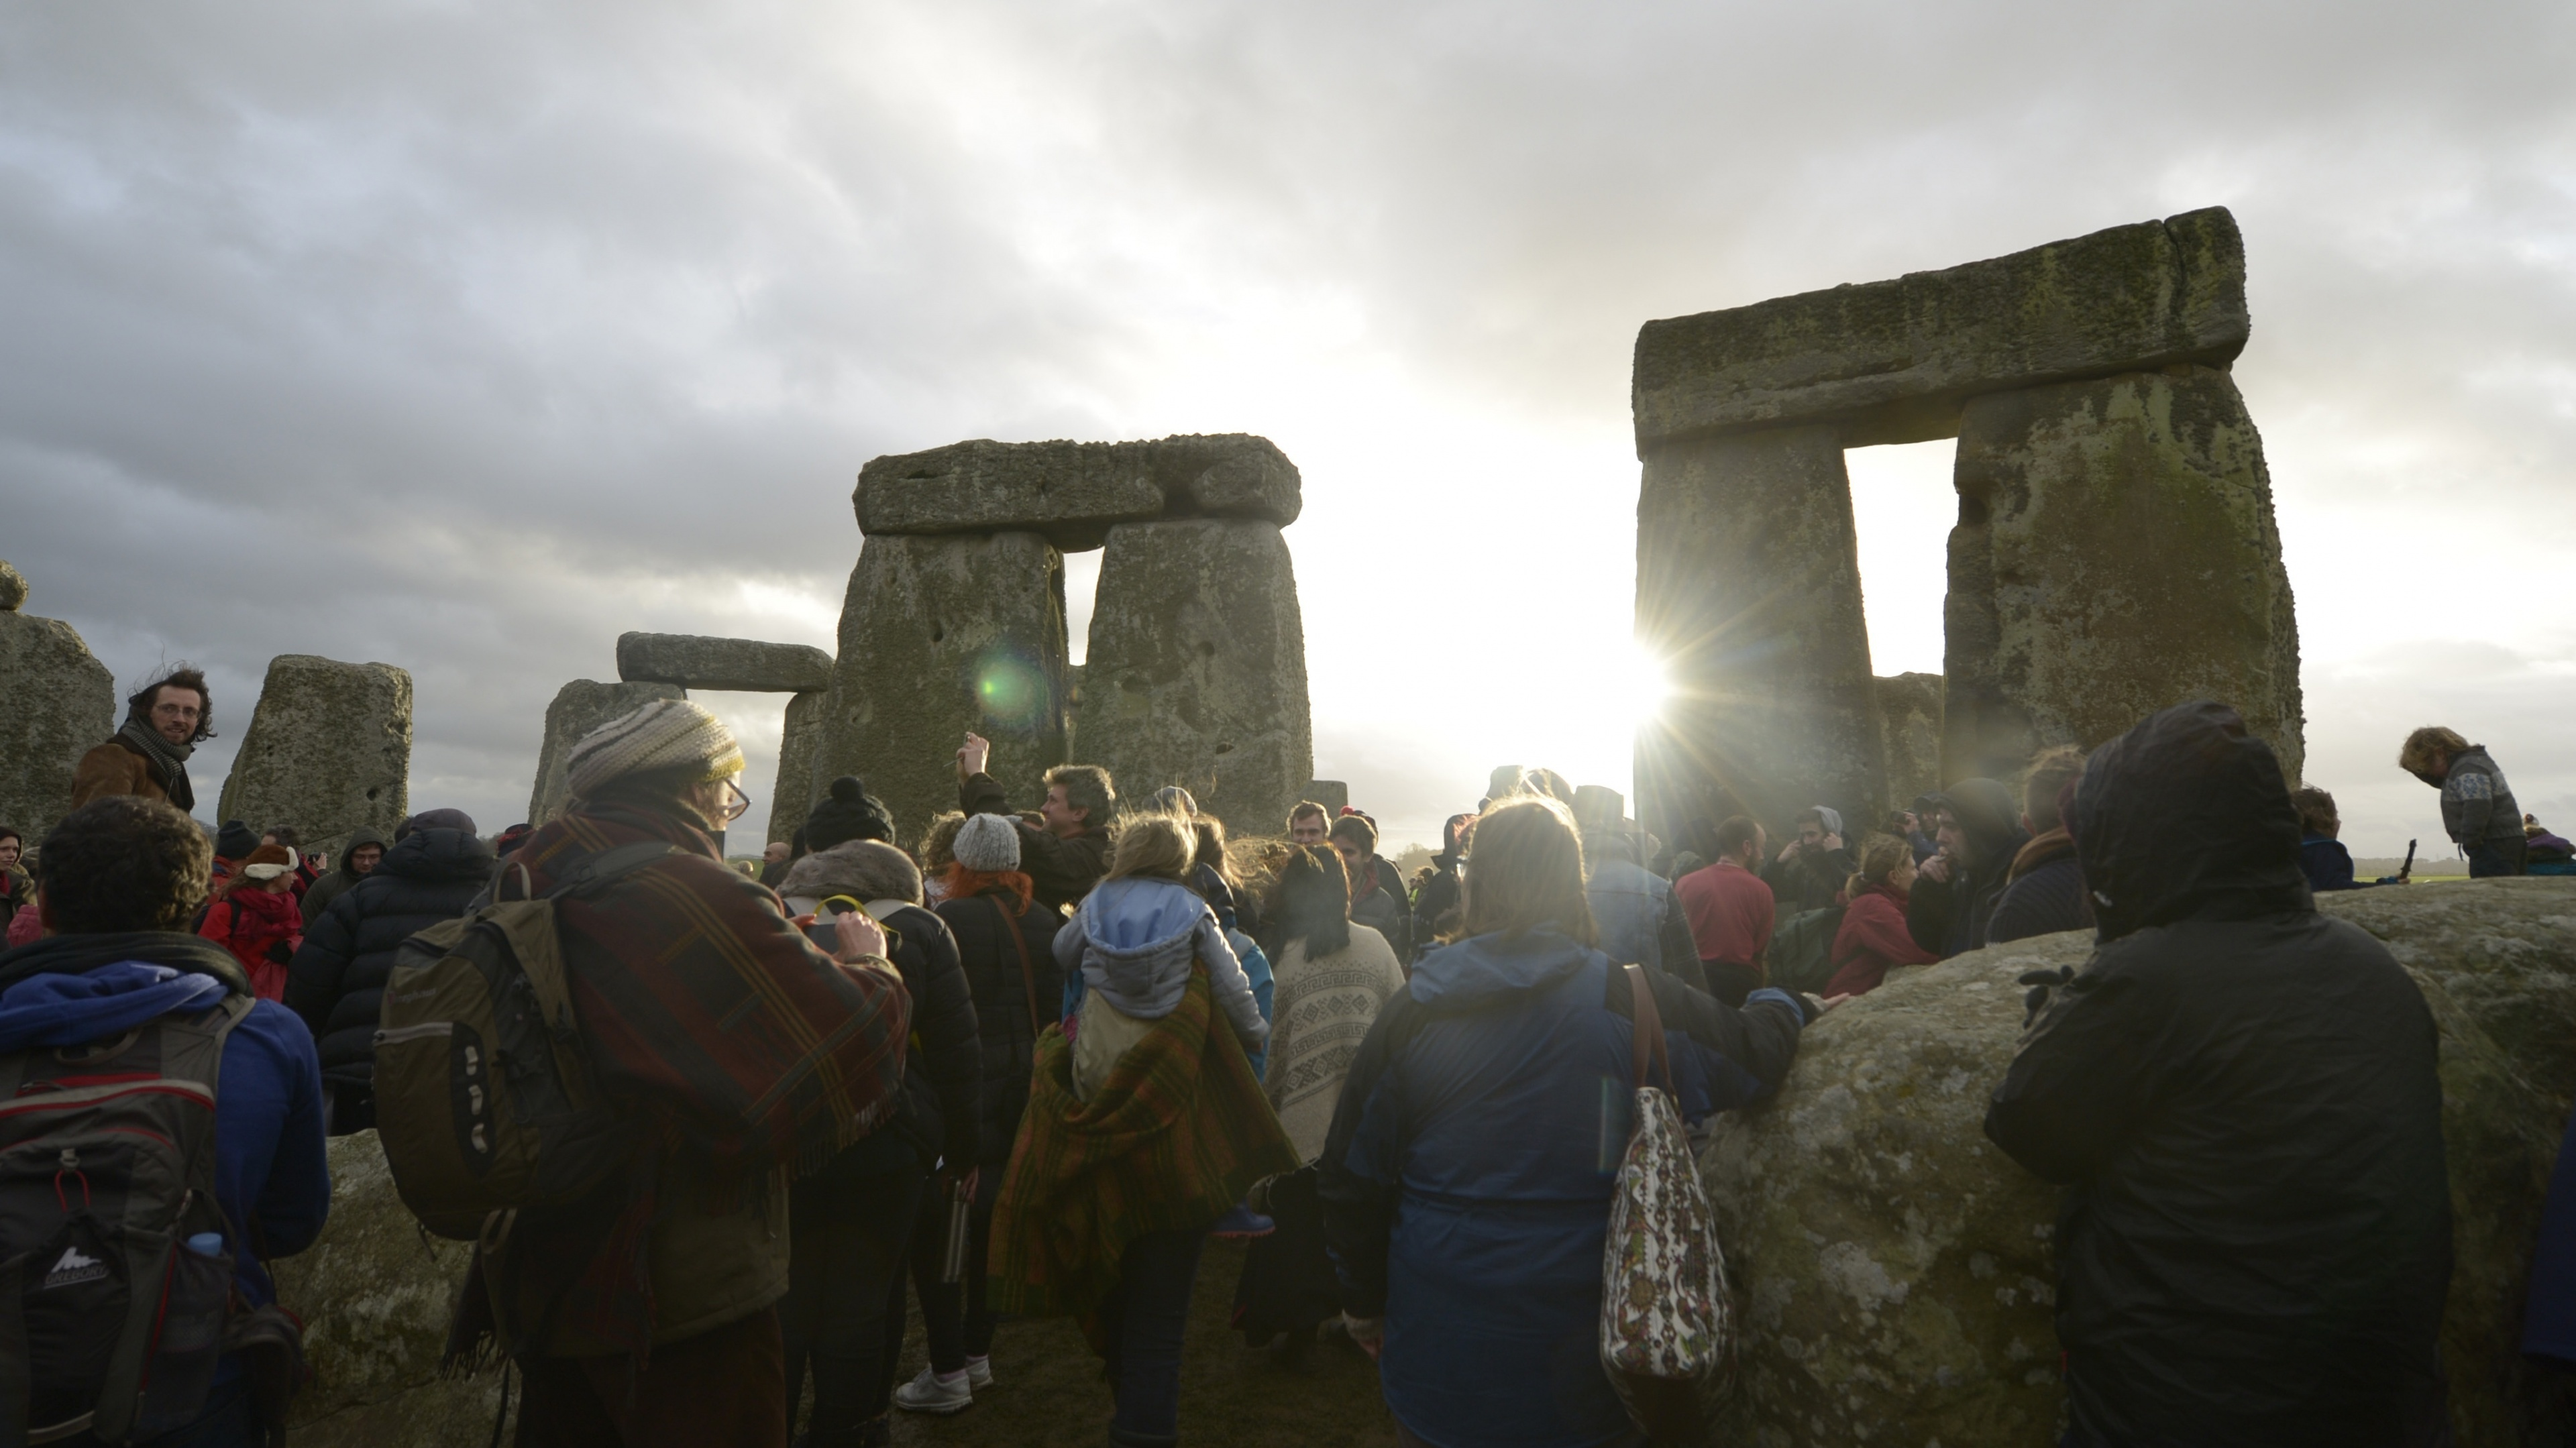 Solstice derives from a Latin word which means 'a sun standing still'.